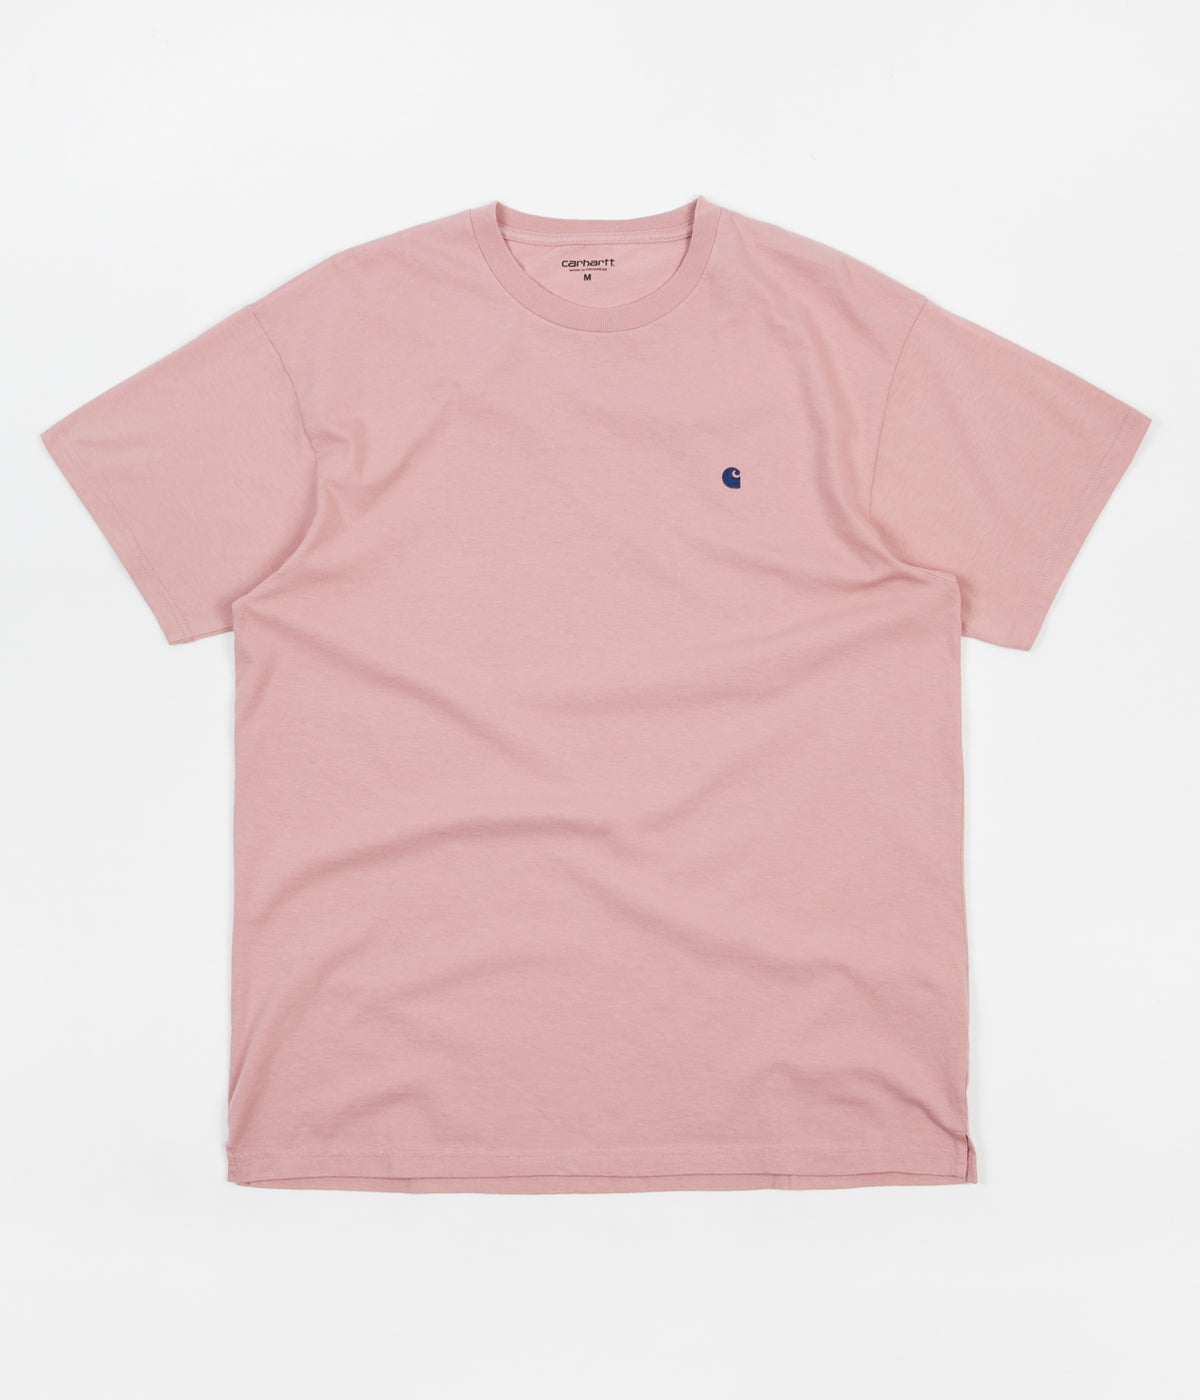 Carhartt Madison T-Shirt - Soft Rose / Sapphire